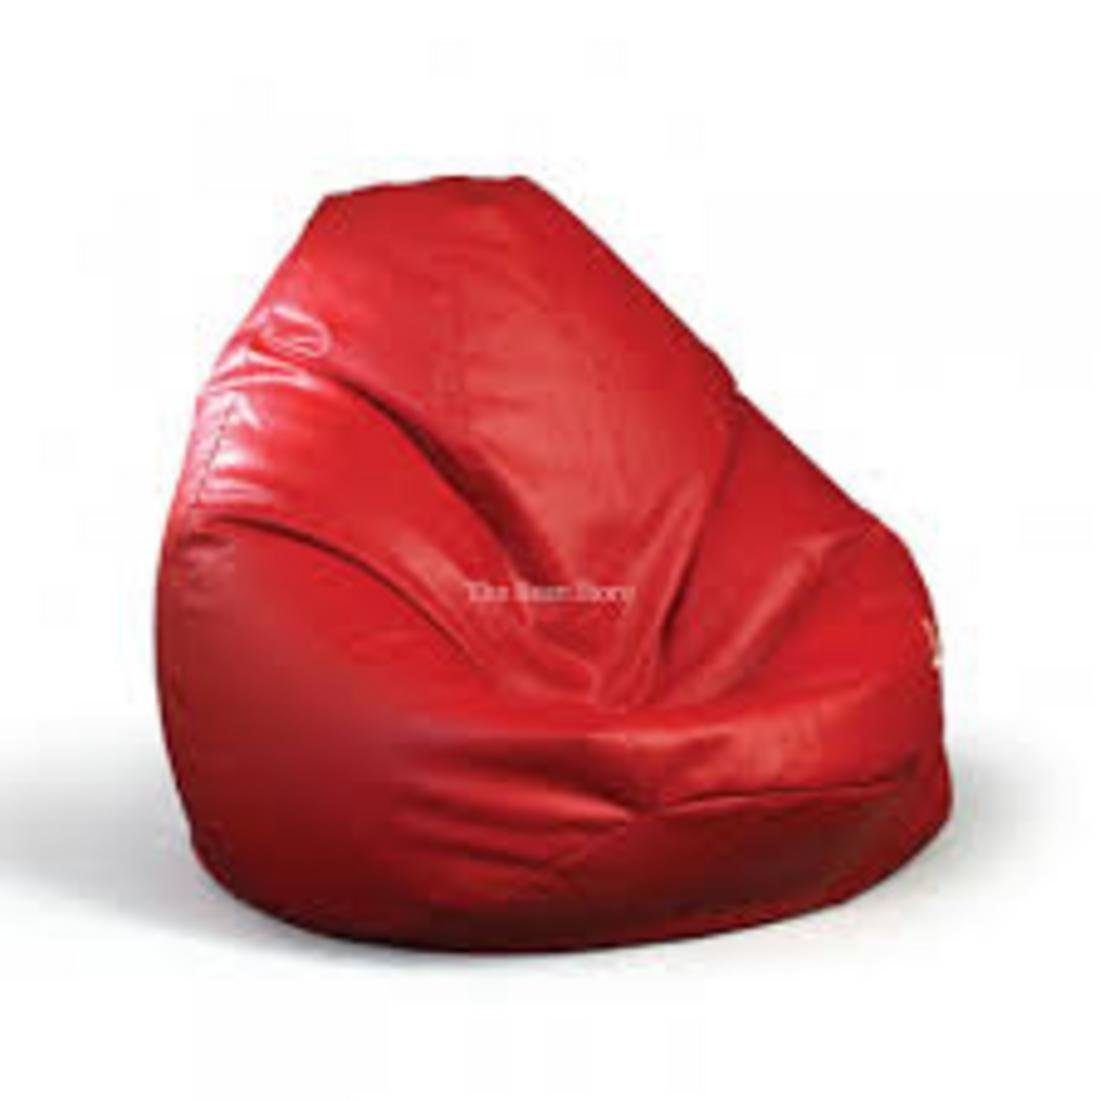 bean bag gaming chair plastic chairs covers gamer home furniture design